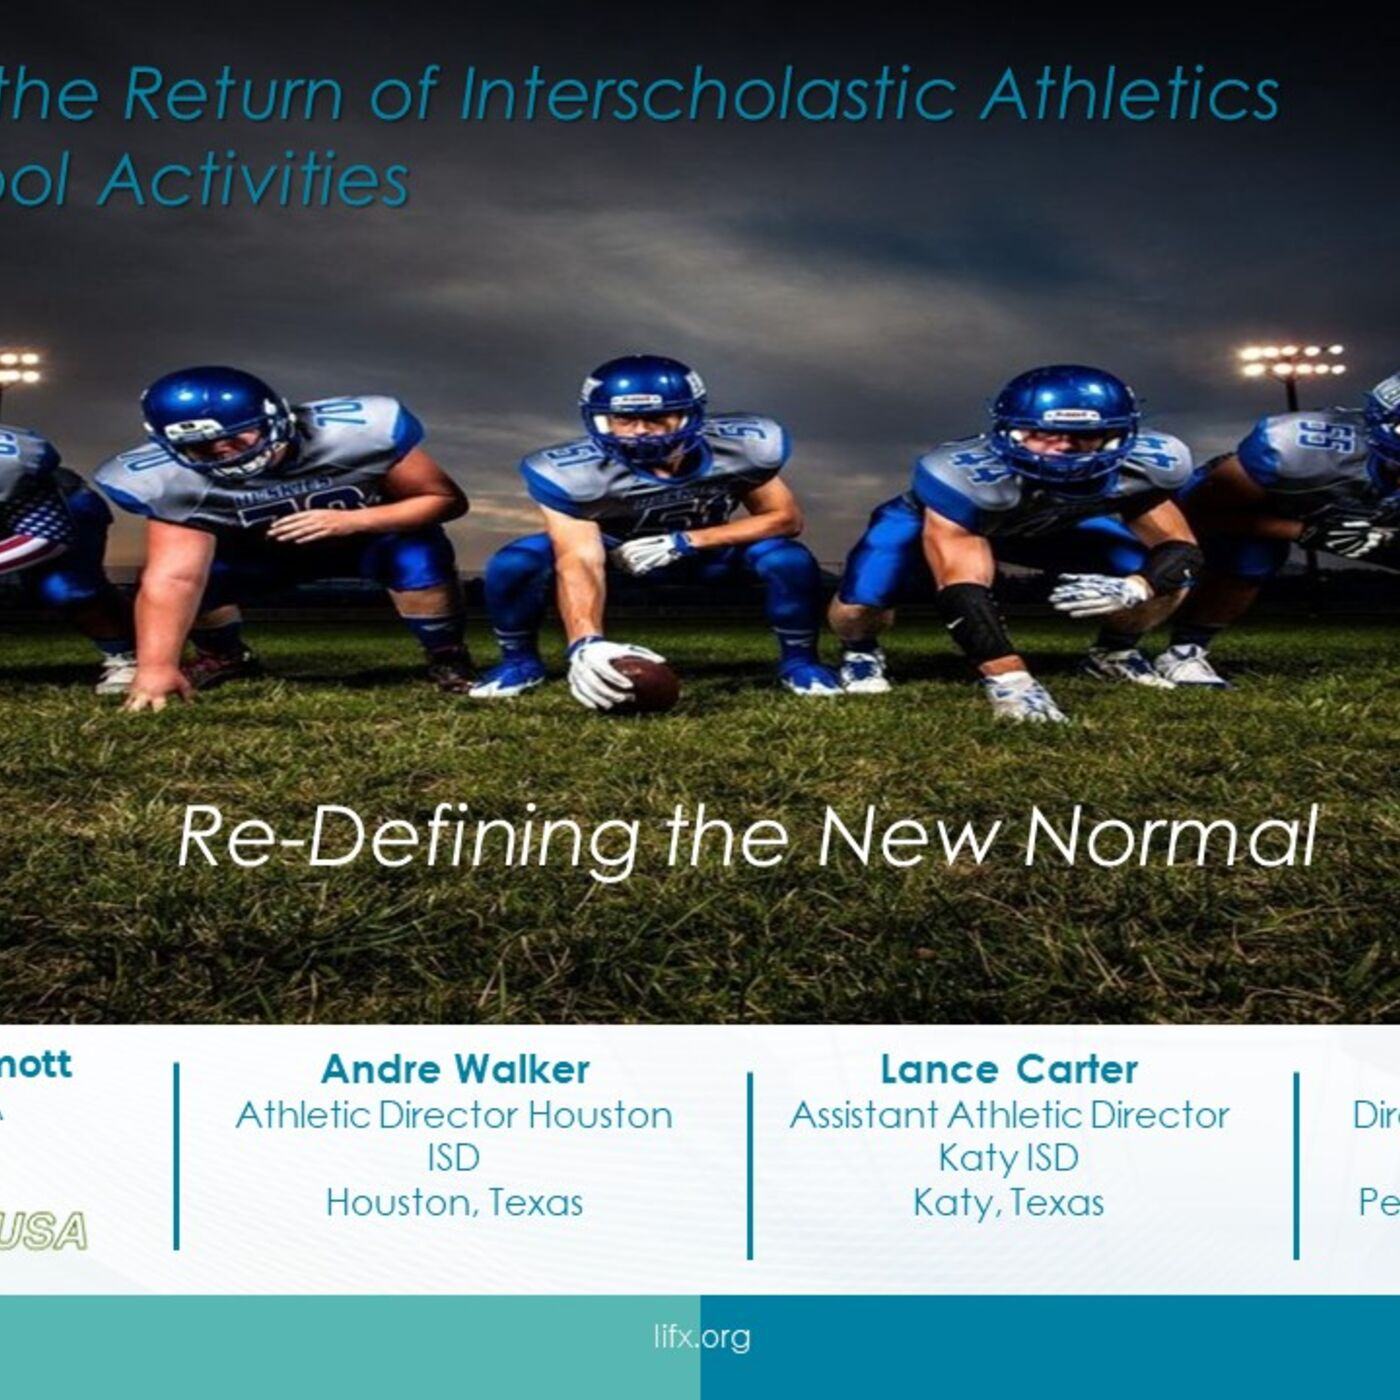 Session 8 - Redefining the New Normal